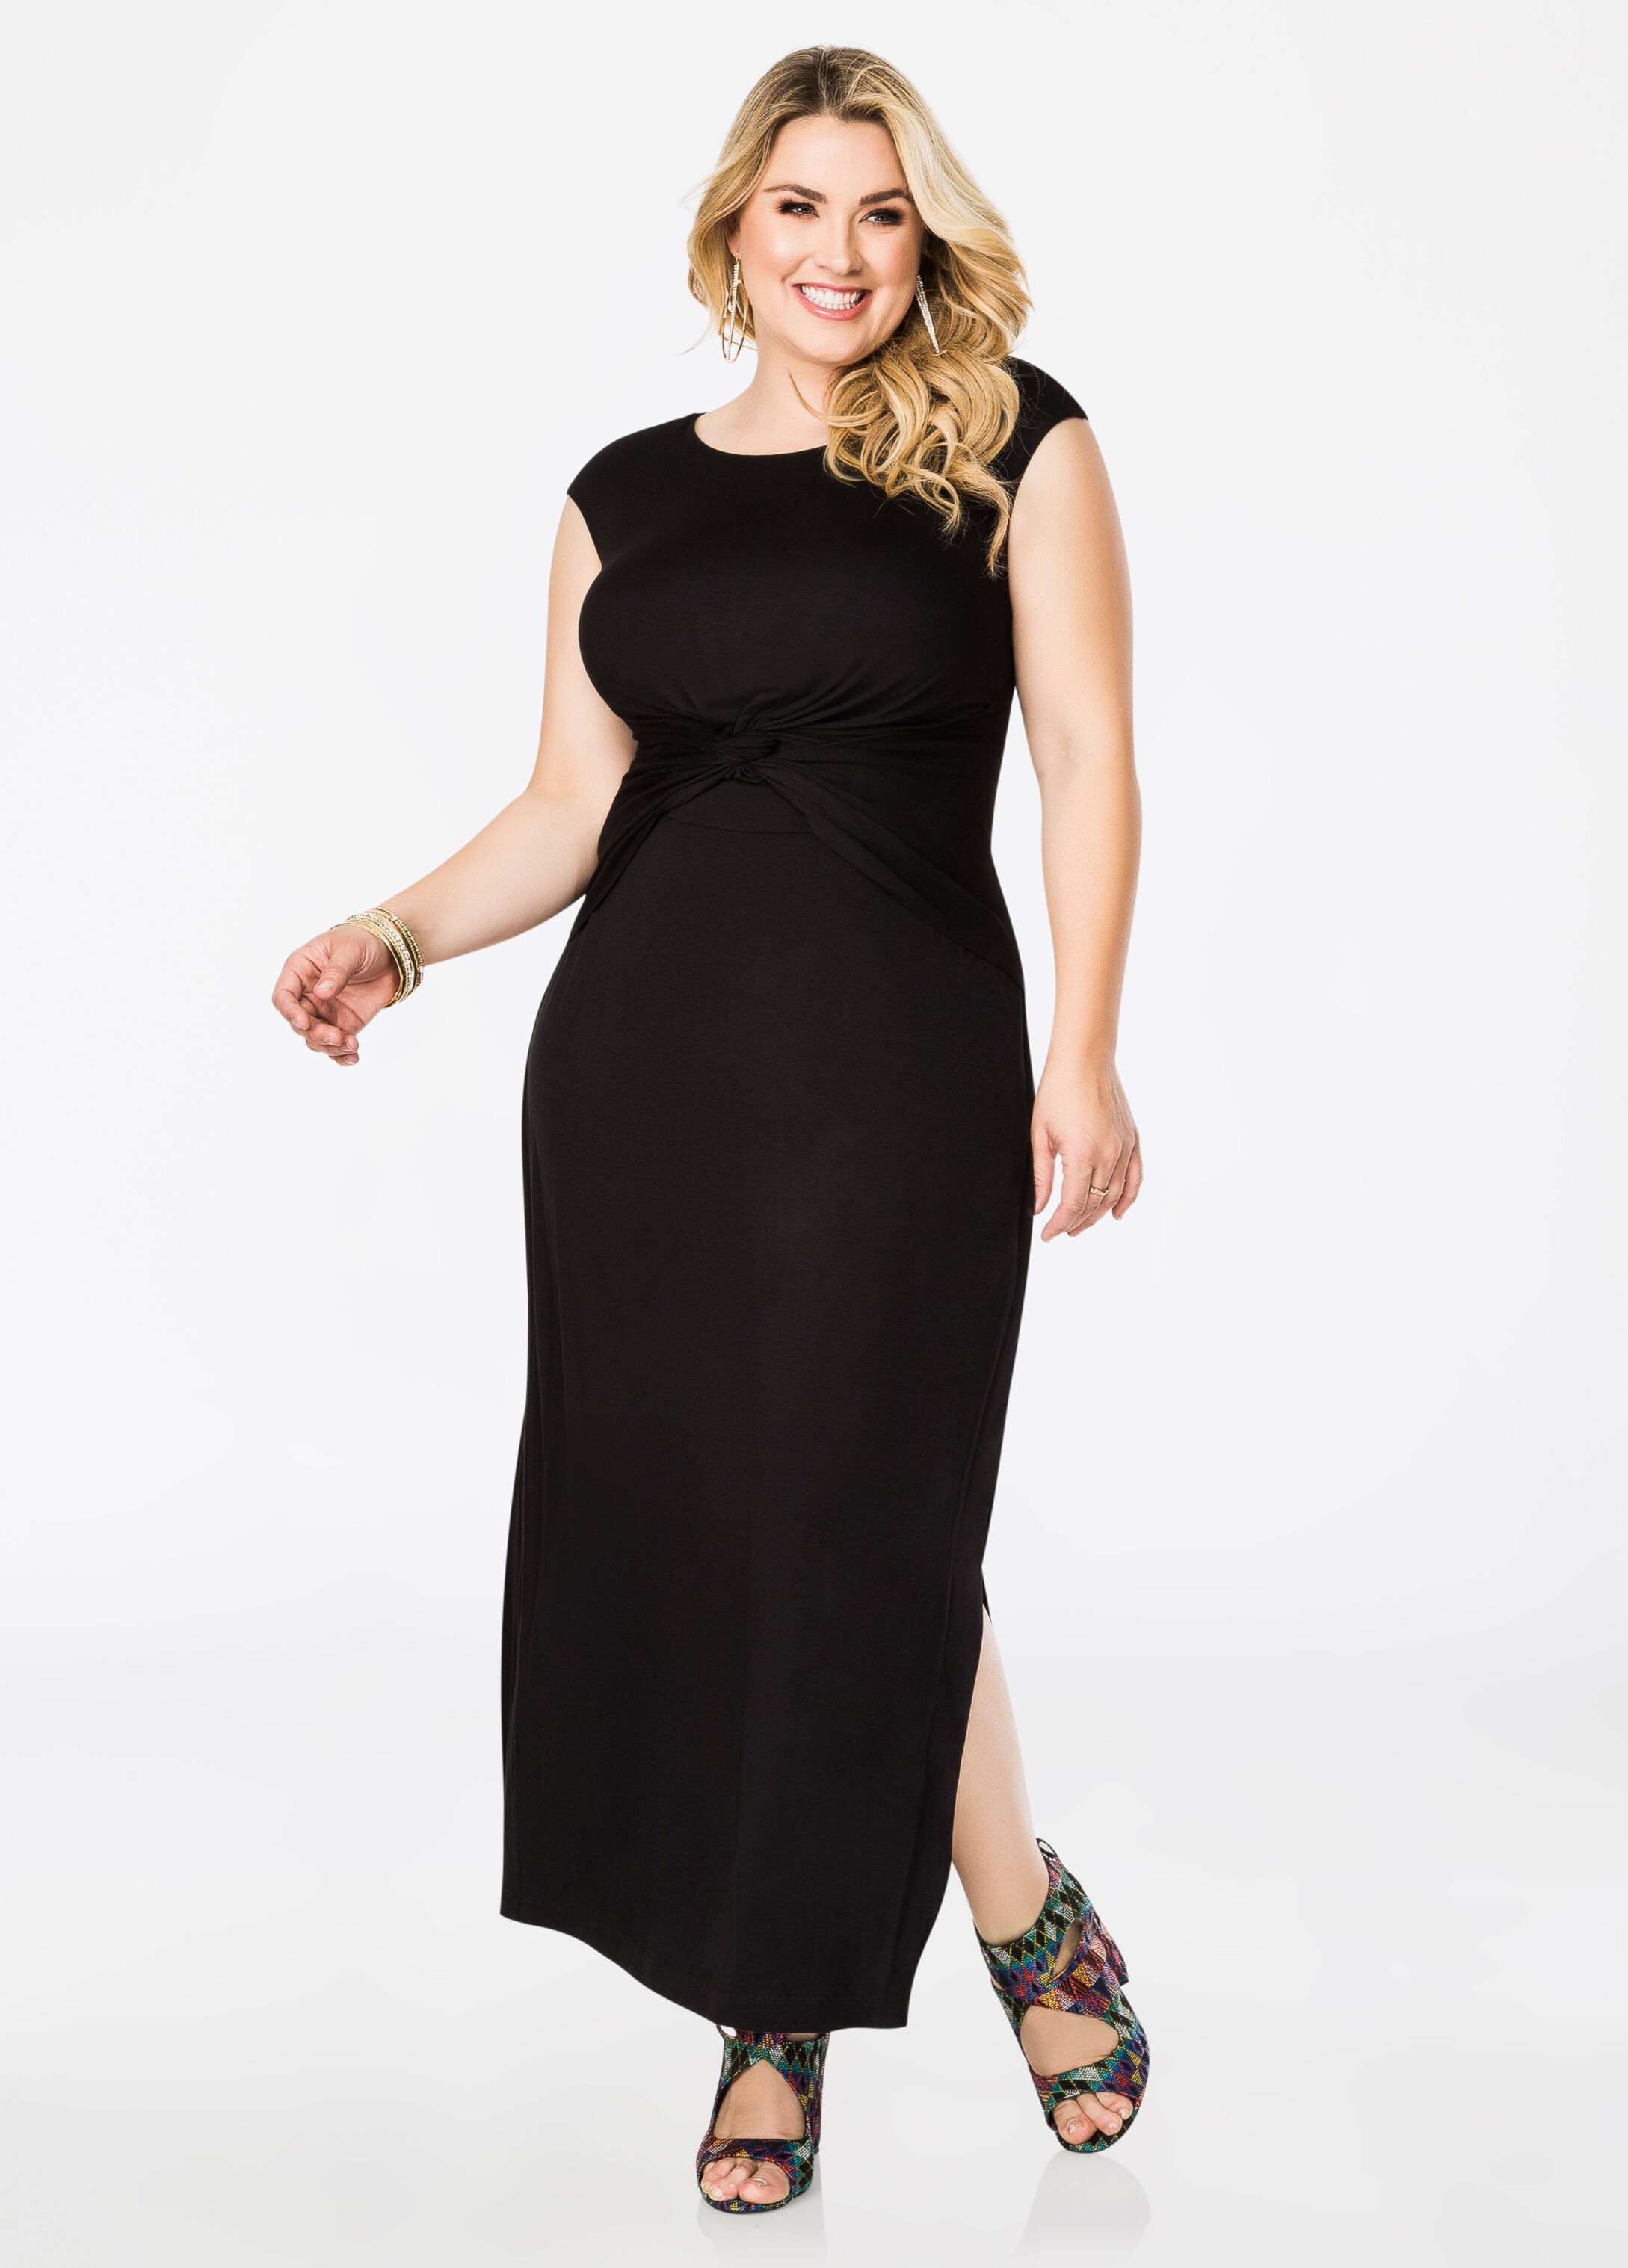 White, Black, Long, Sleeve, Sleeveless, Strapless, Floral, Plus Size, Halter, Polka Dots No Matter Which Designs You Are Looking For Maxi Dress, You Can Find One. Perfect For Any Occasion, Find Your Perfect Maxi Dress From Myladystar.